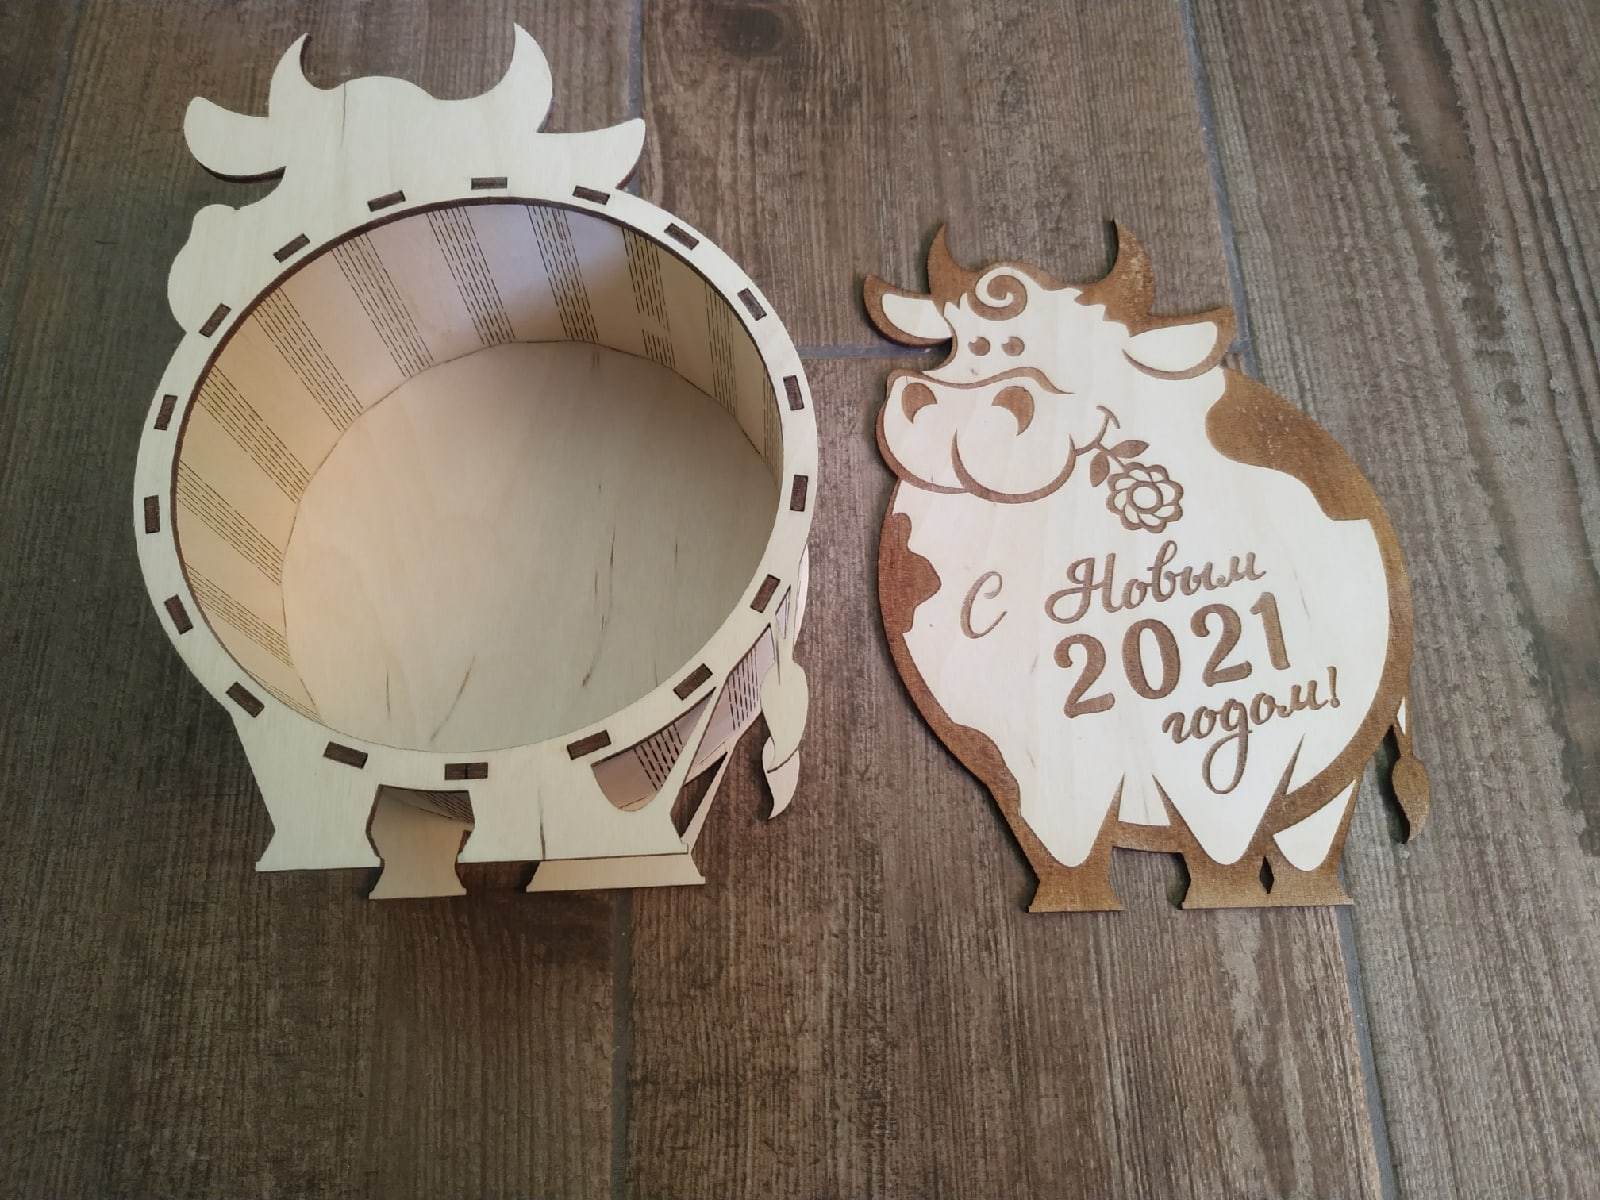 Laser Cut Bull New Year 2021 Gift Box New Years Eve Box Free CDR Vectors Art